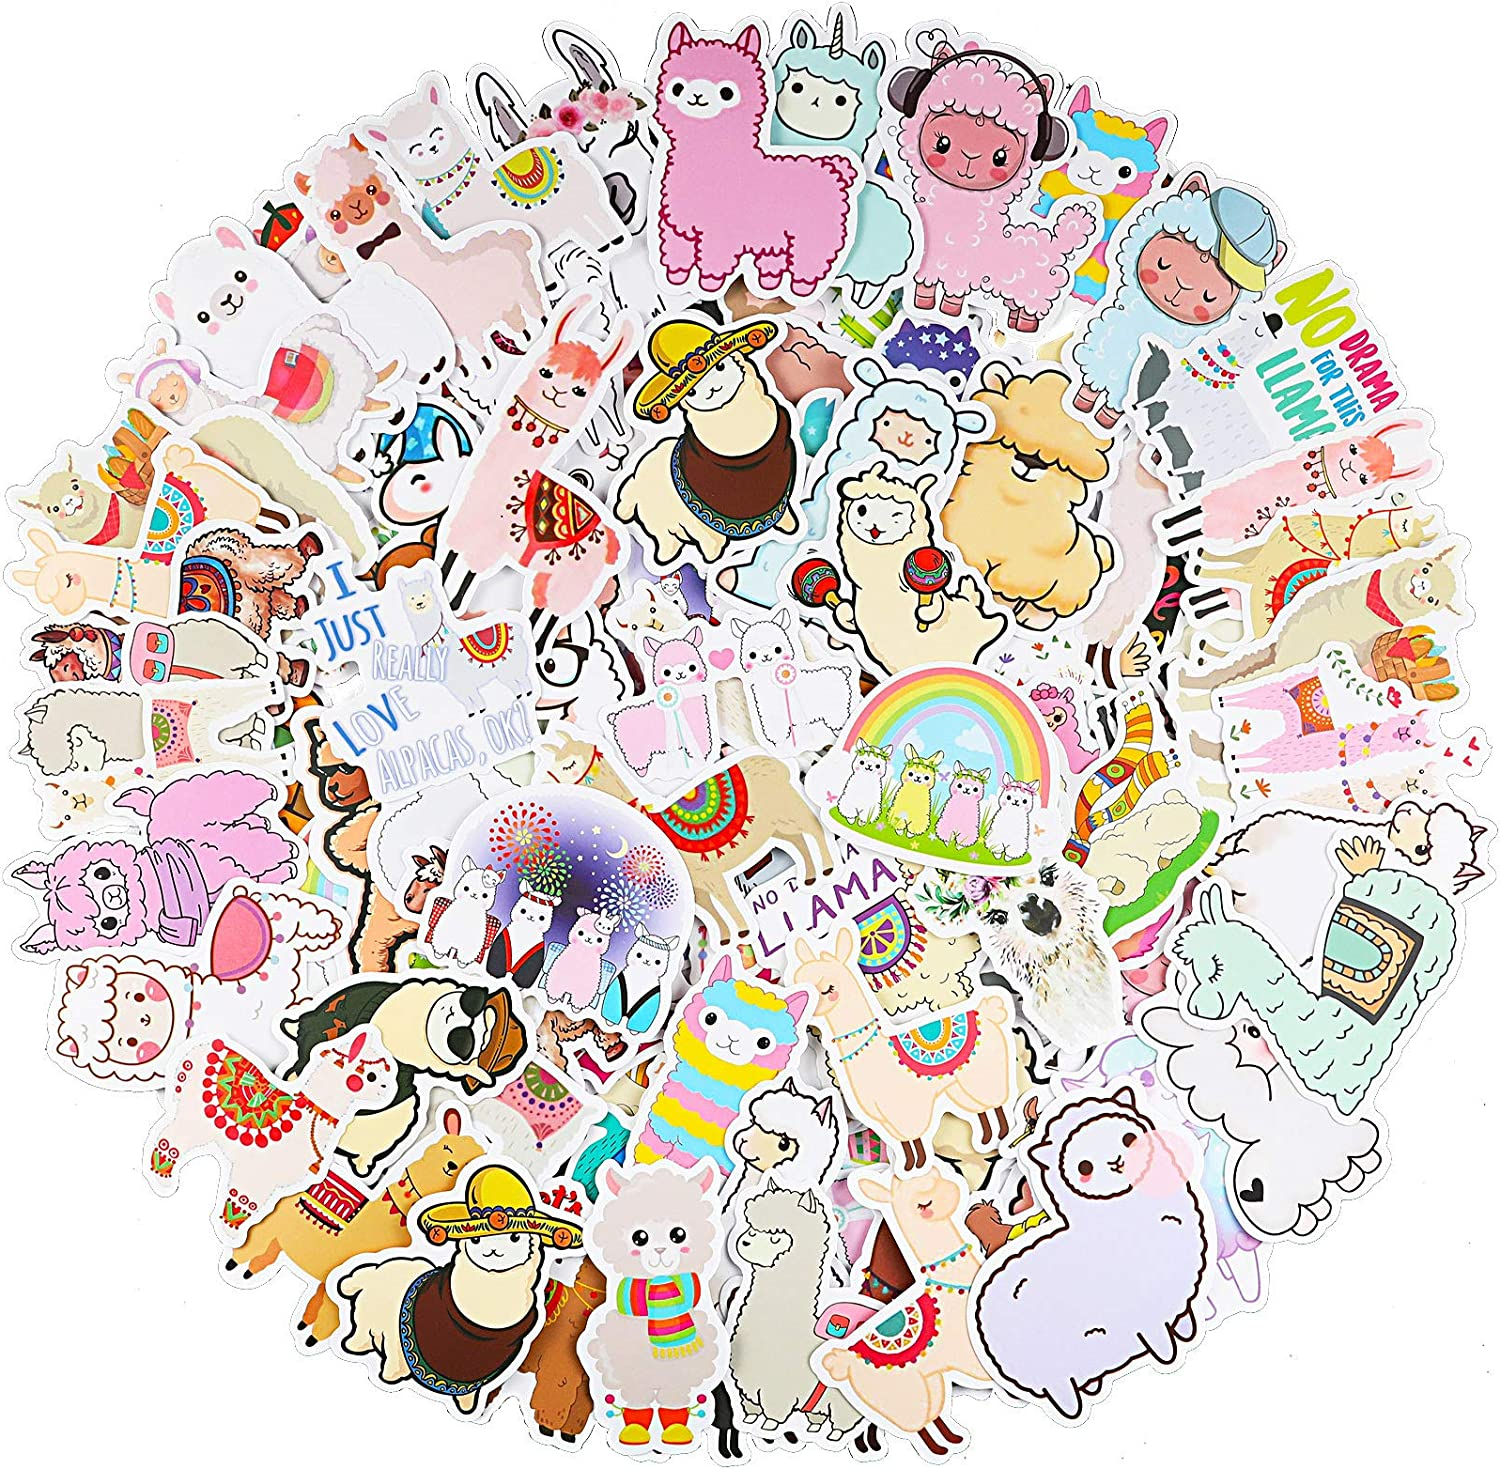 100 Pieces Funny Llama Stickers, Cute Animal Alpaca Decals for Boys Girl Teens, Llama Theme Laptop Stickers Waterproof Vinyl Bottles Stickers for Computer Phone Motorcycle Mexican Camel Theme Party